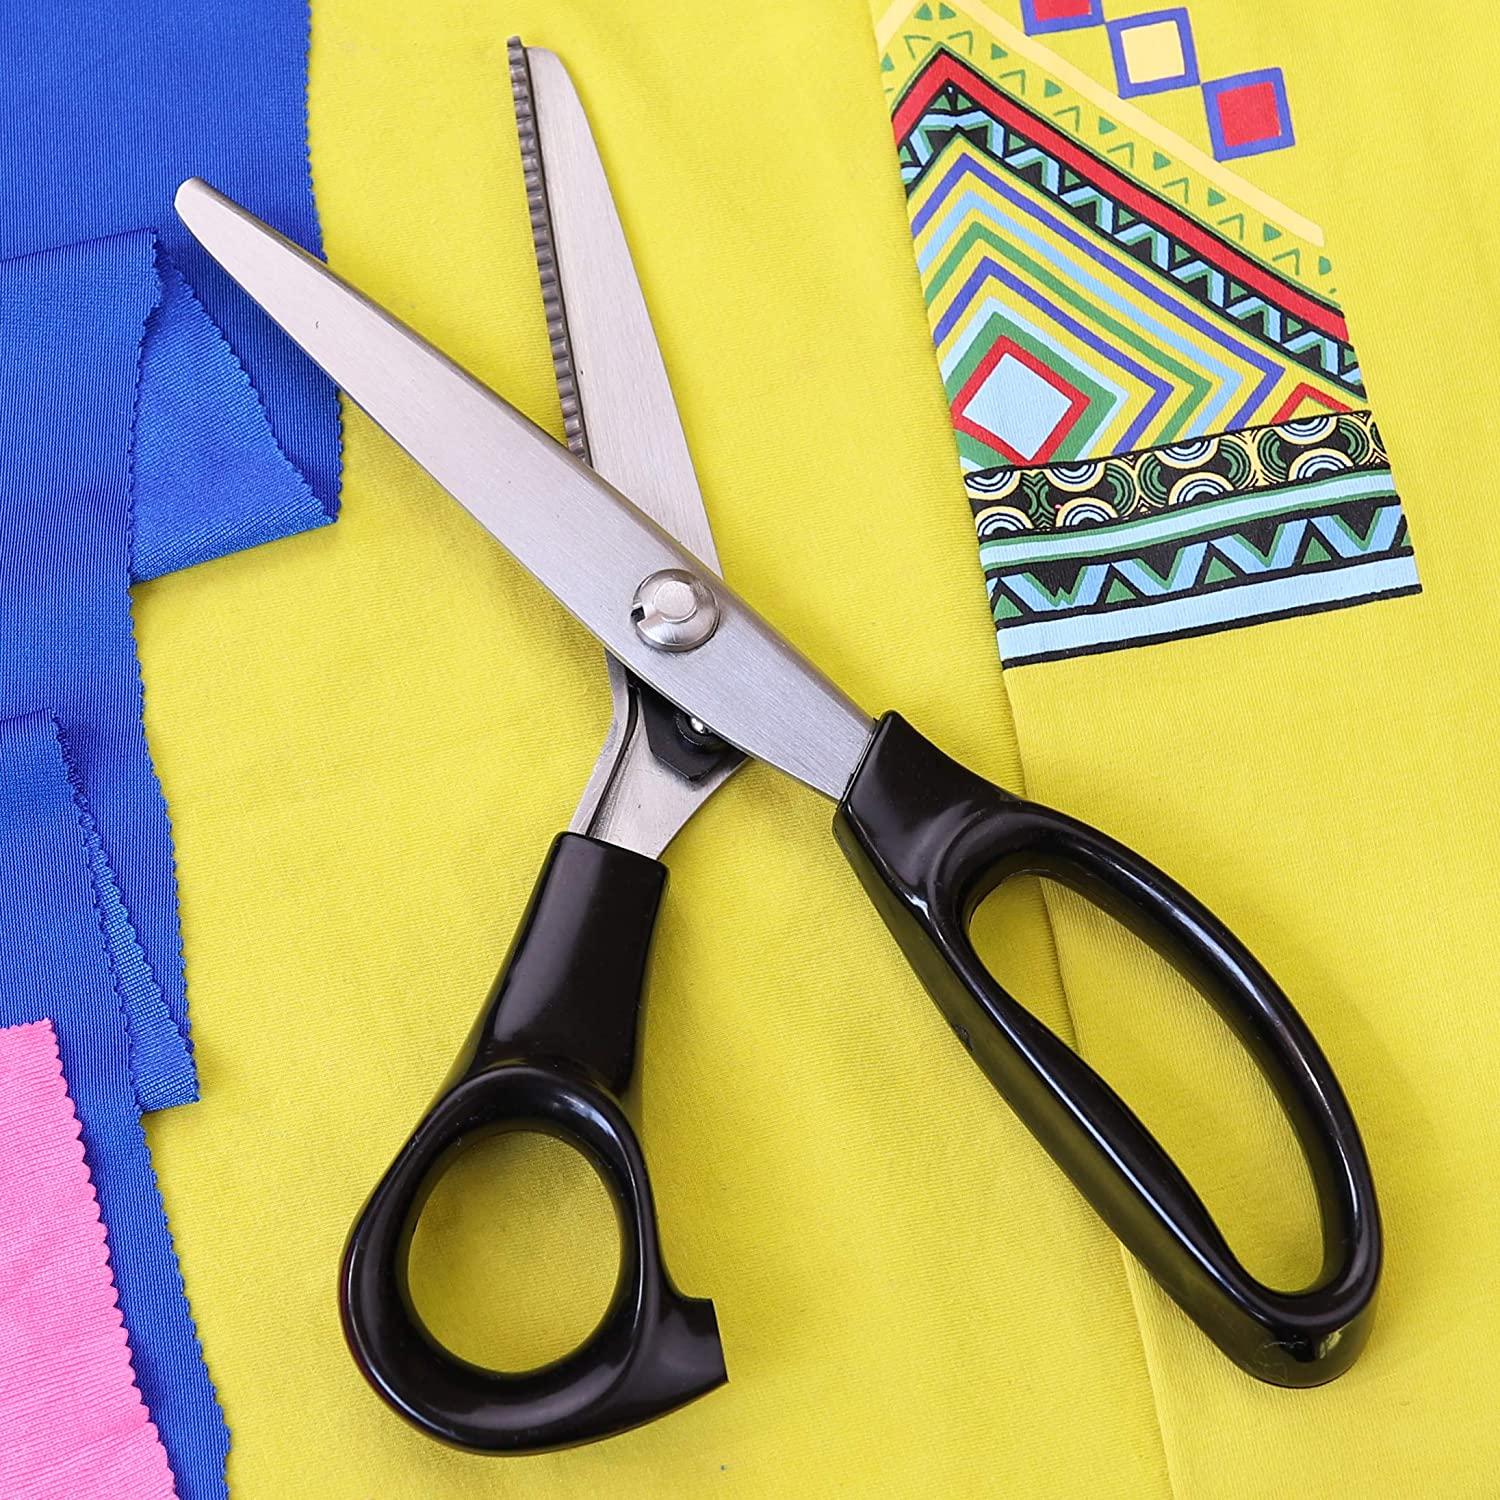 Hui Tong Strong /& Sharpe Pinking Shears for Fabric,Serrated and Scalloped Pinking sheers,A Total of 6 Models Serrated 5mm